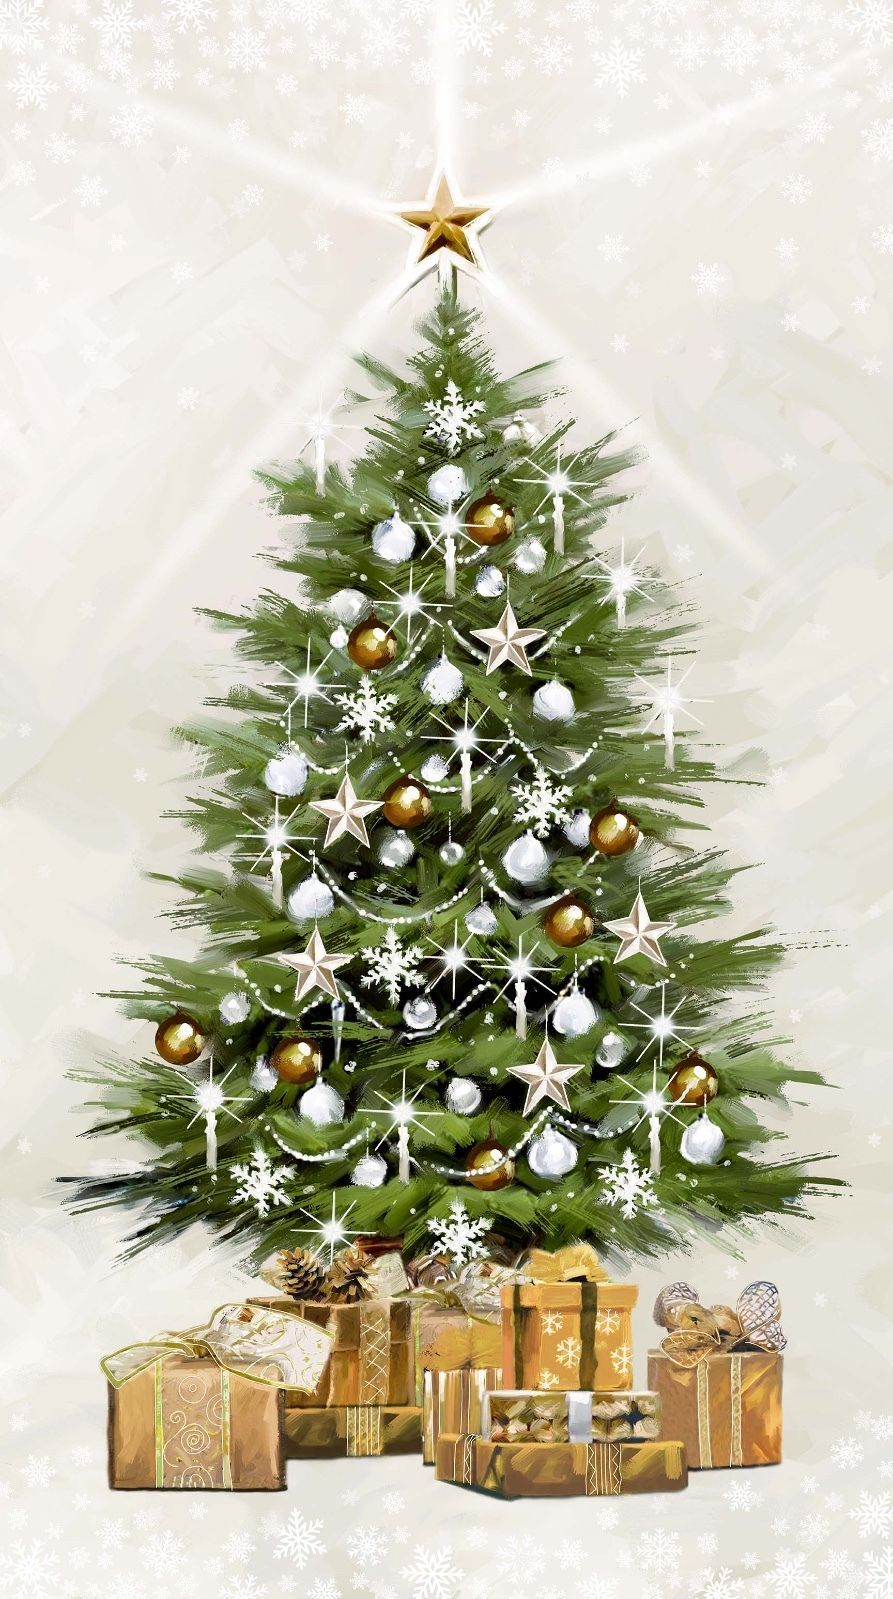 Northcott Fabric White Christmas Tree Panel By Richard Macneil Quilting Crafting Ebay